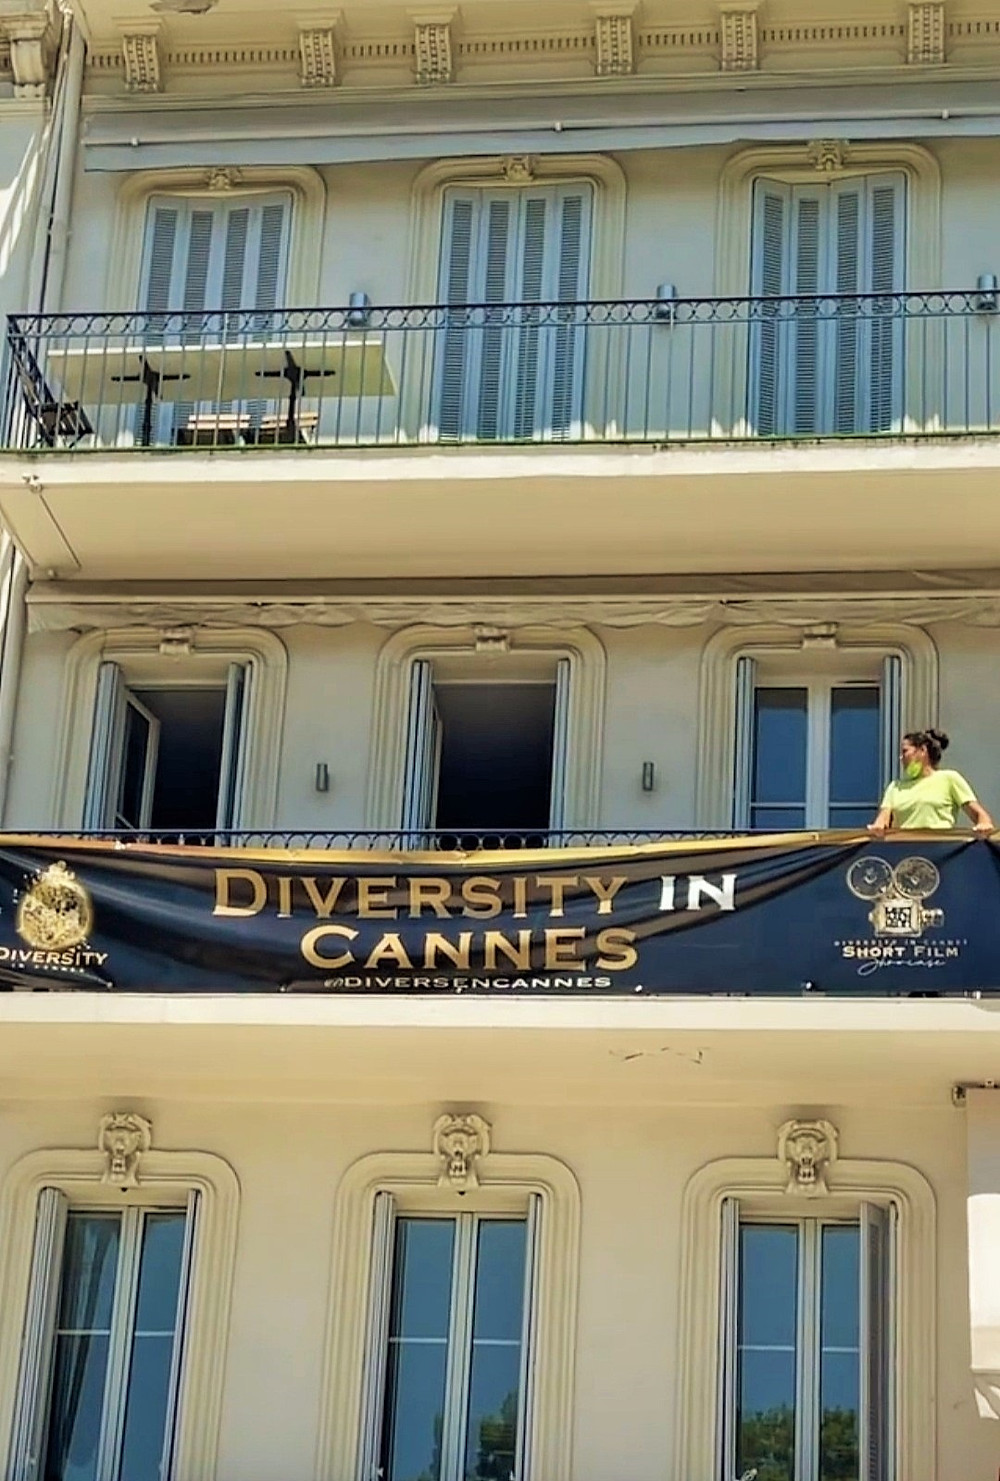 King of Diversity in Cannes